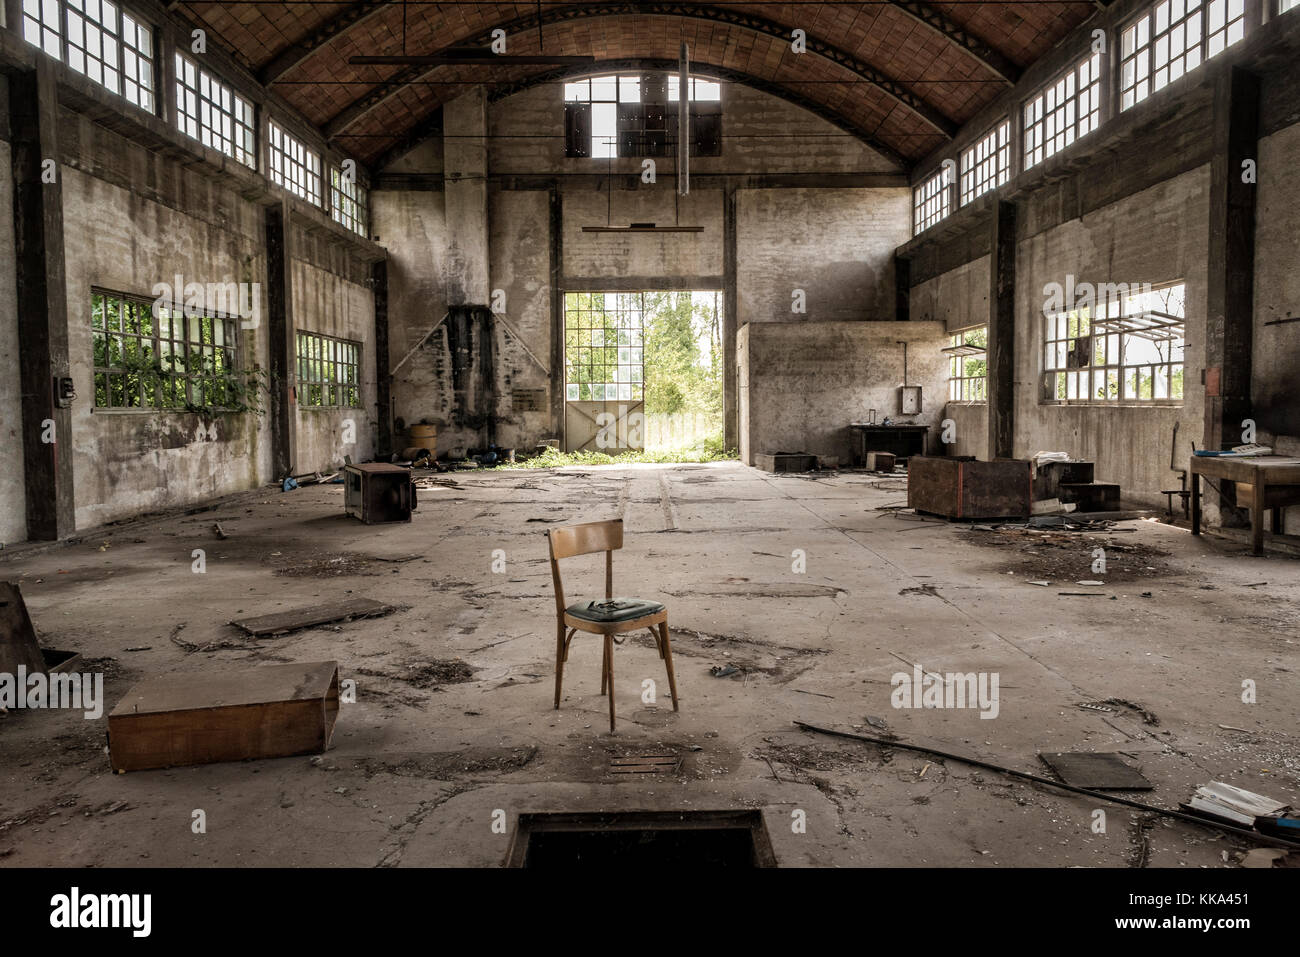 Abandoned factory (central perspective) with chair in foreground - Stock Image